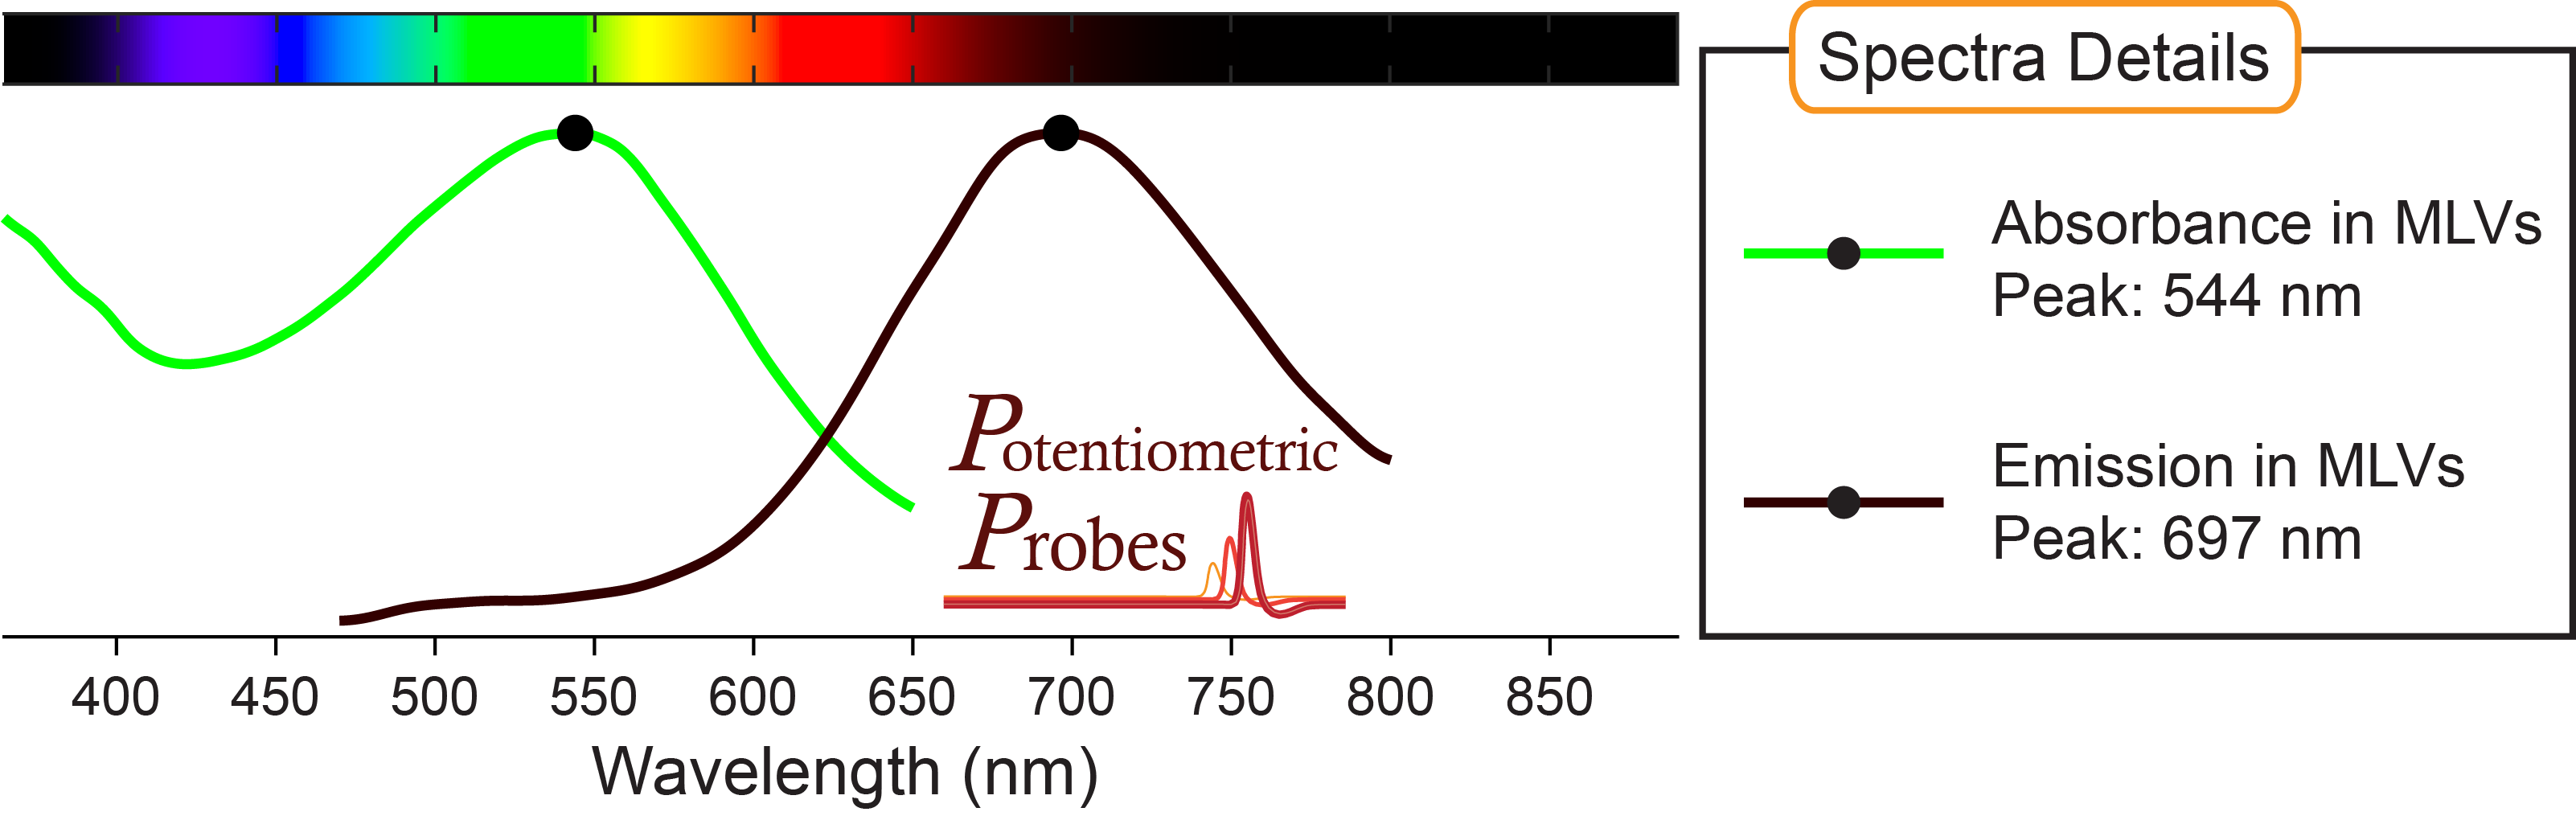 Spectra of voltage-sensitive dye Di-4-ANEQ(F)PTEA from Potentiometric Probes